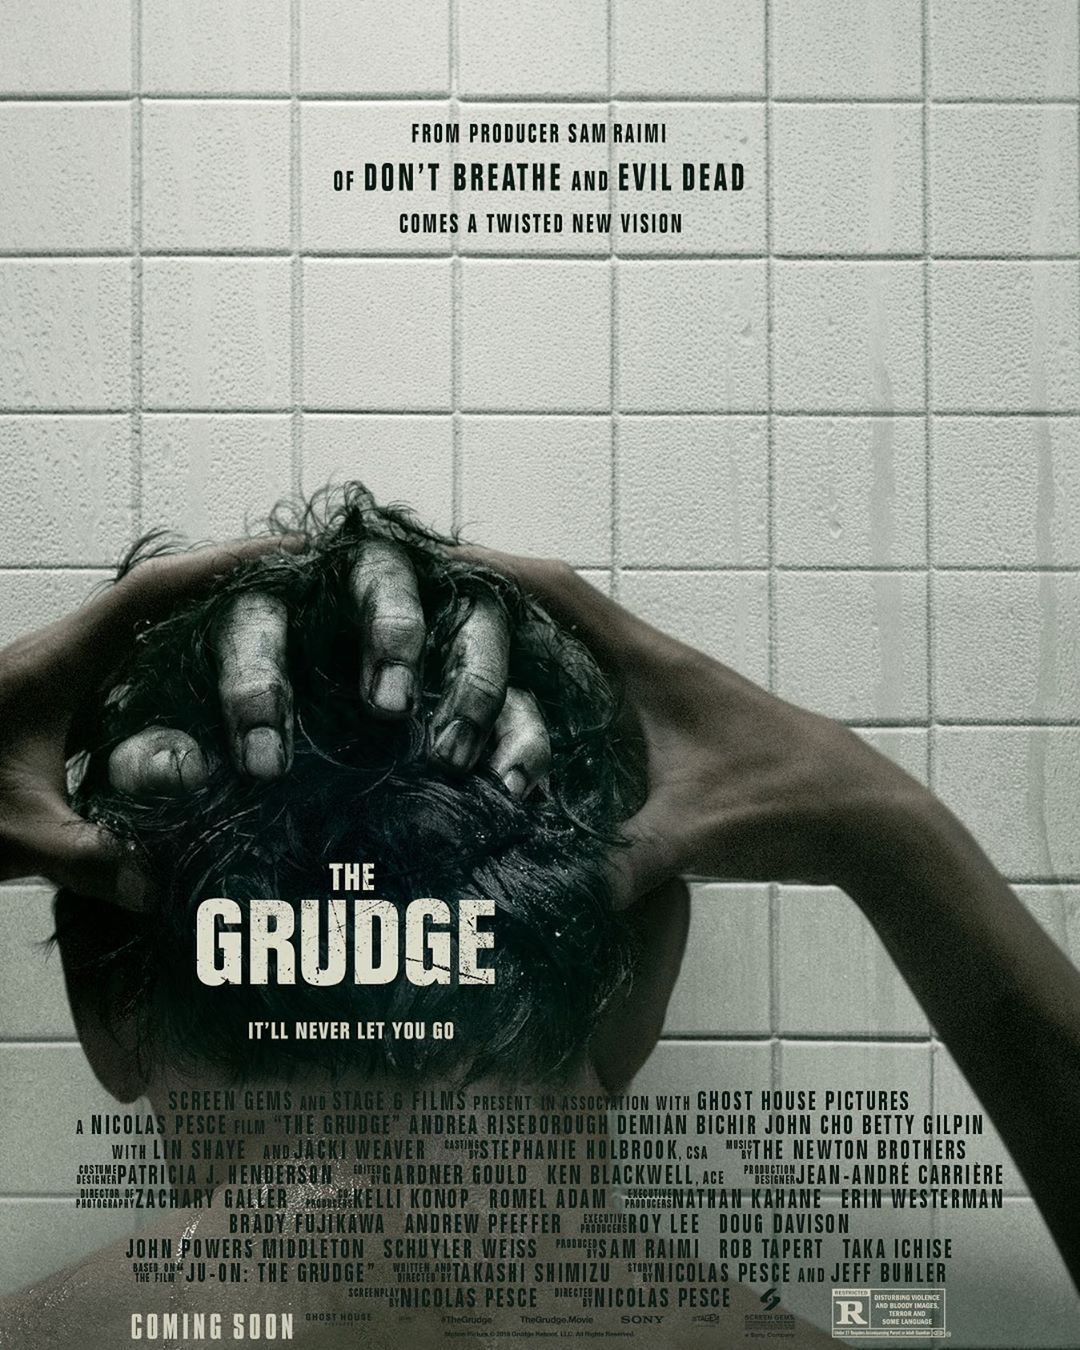 Nightmarish Conjurings On Instagram On The 15th Anniversary Of The Grudge Staring Sarah Michelle Gellar We Now Have Th In 2020 The Grudge Movie The Grudge John Cho